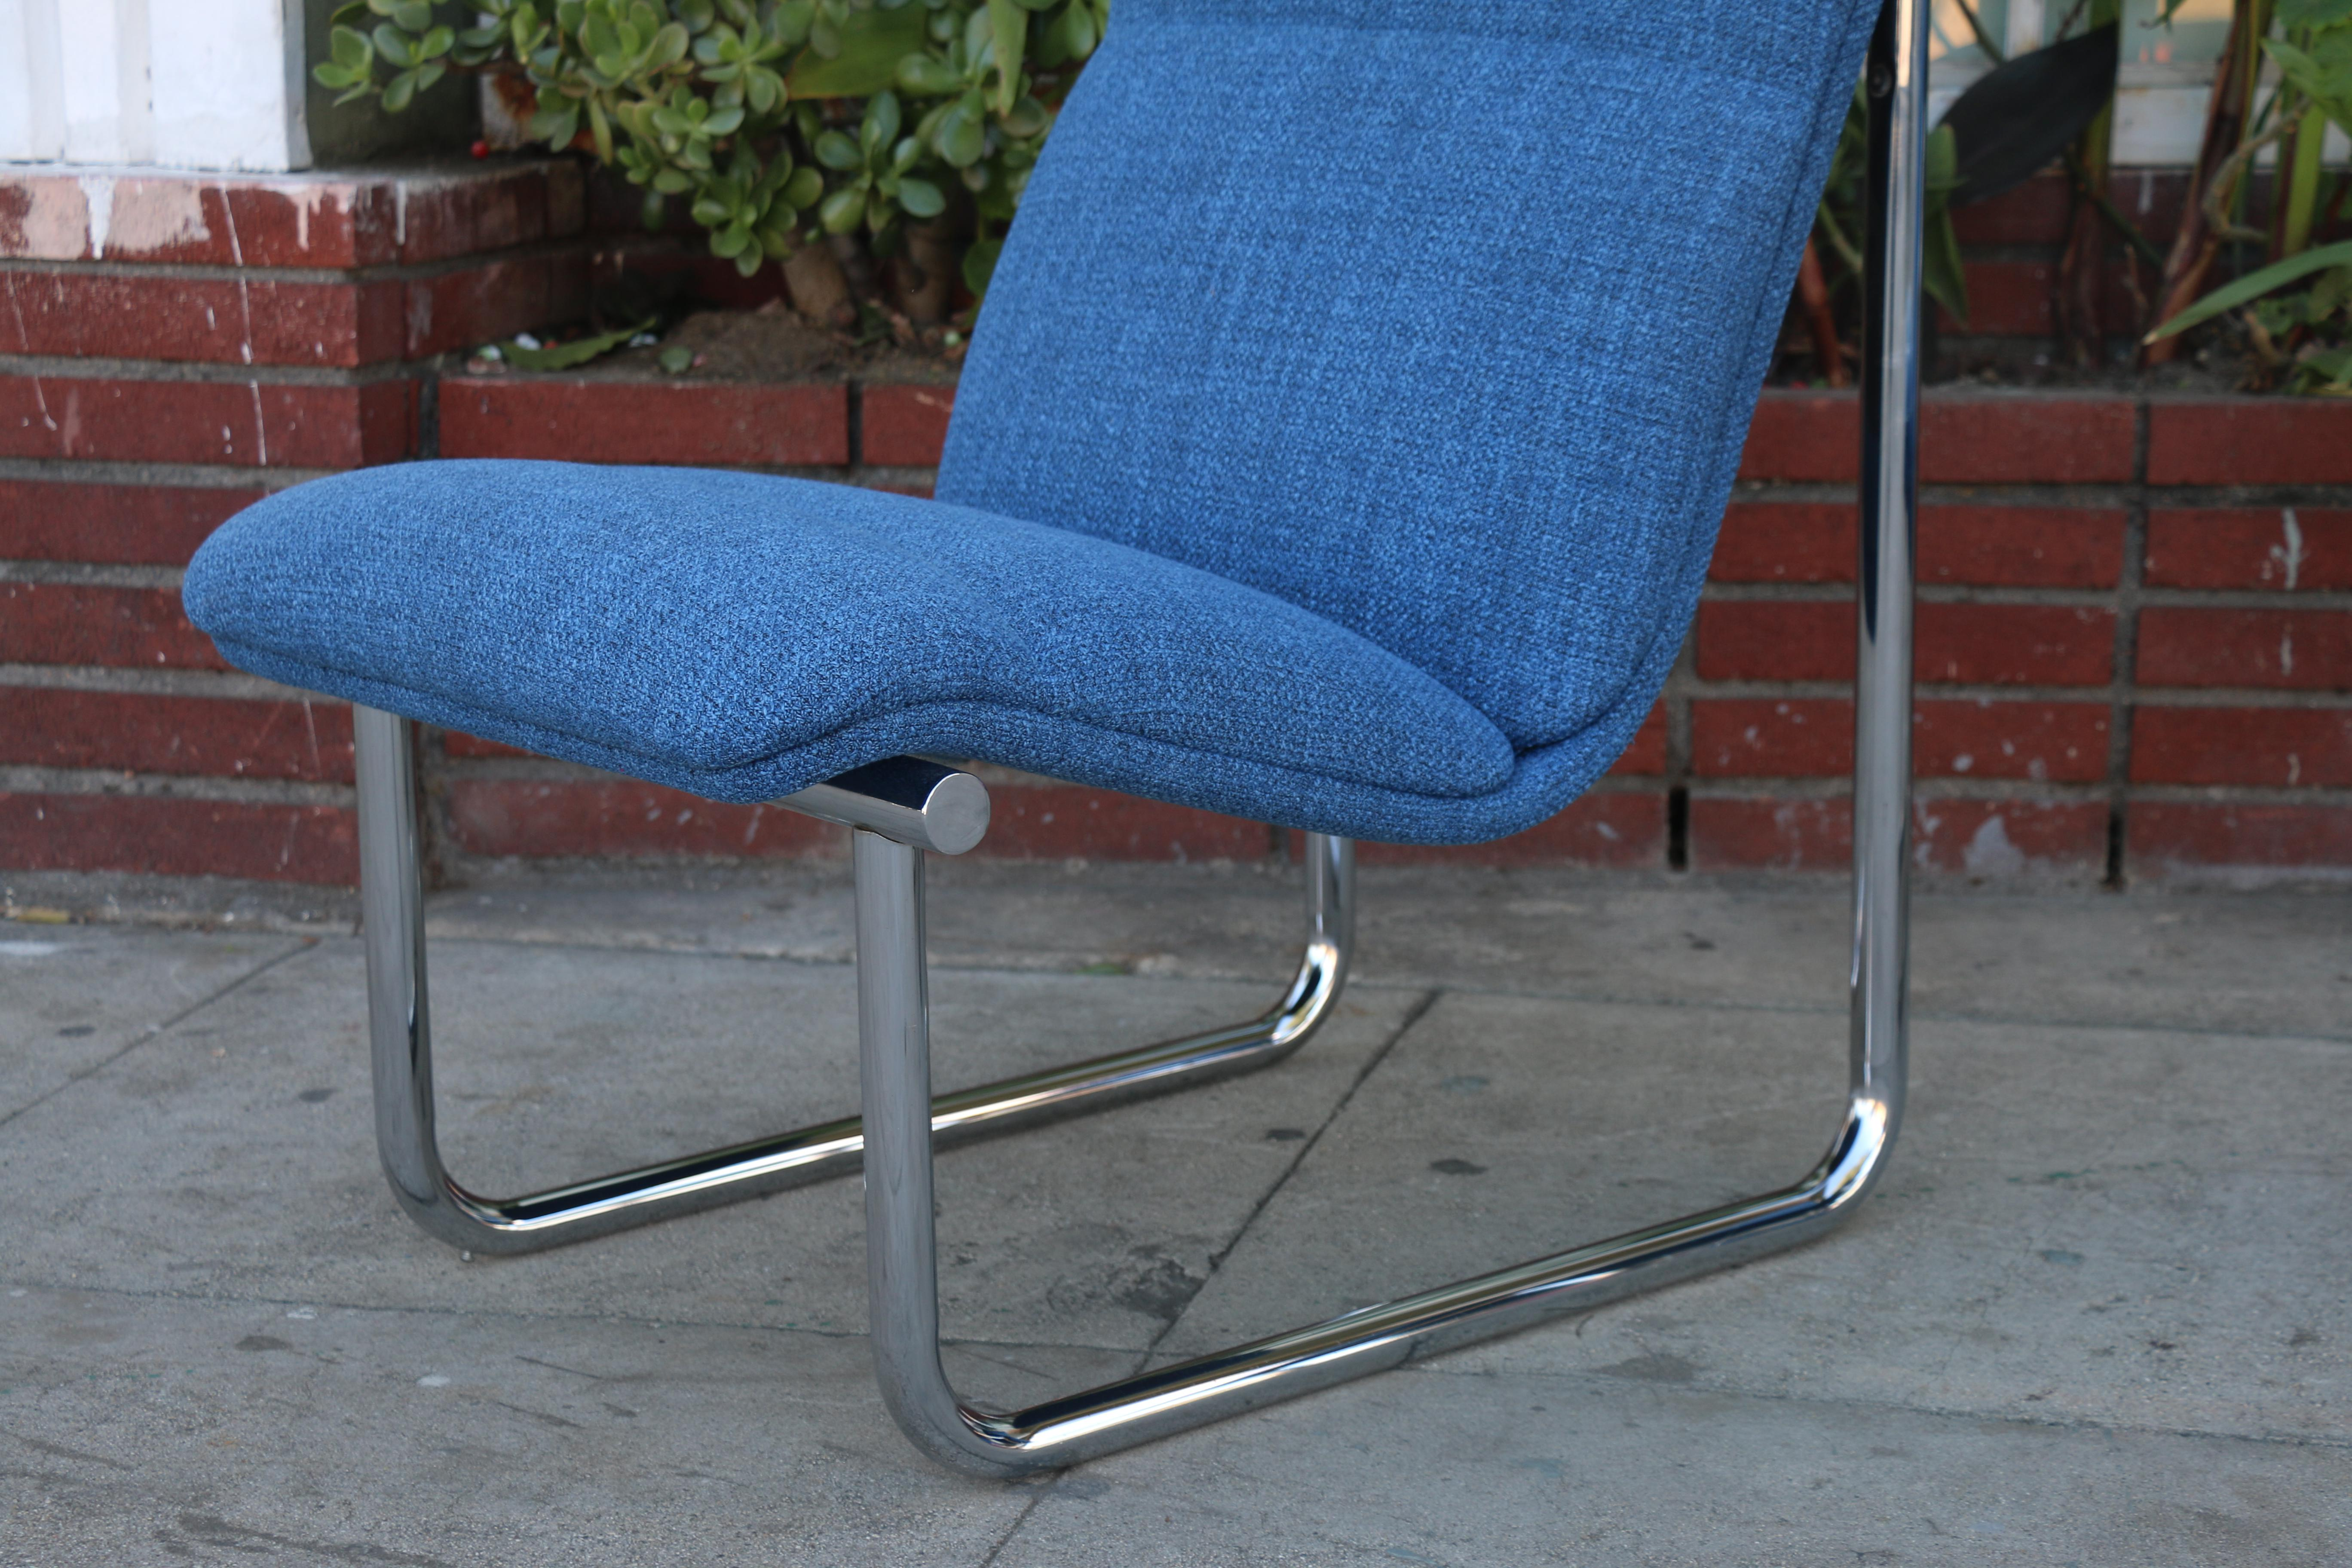 Steelcase Blue Slipper Chairs - A Pair - Image 6 of 11  sc 1 st  Chairish & Steelcase Blue Slipper Chairs - A Pair | Chairish